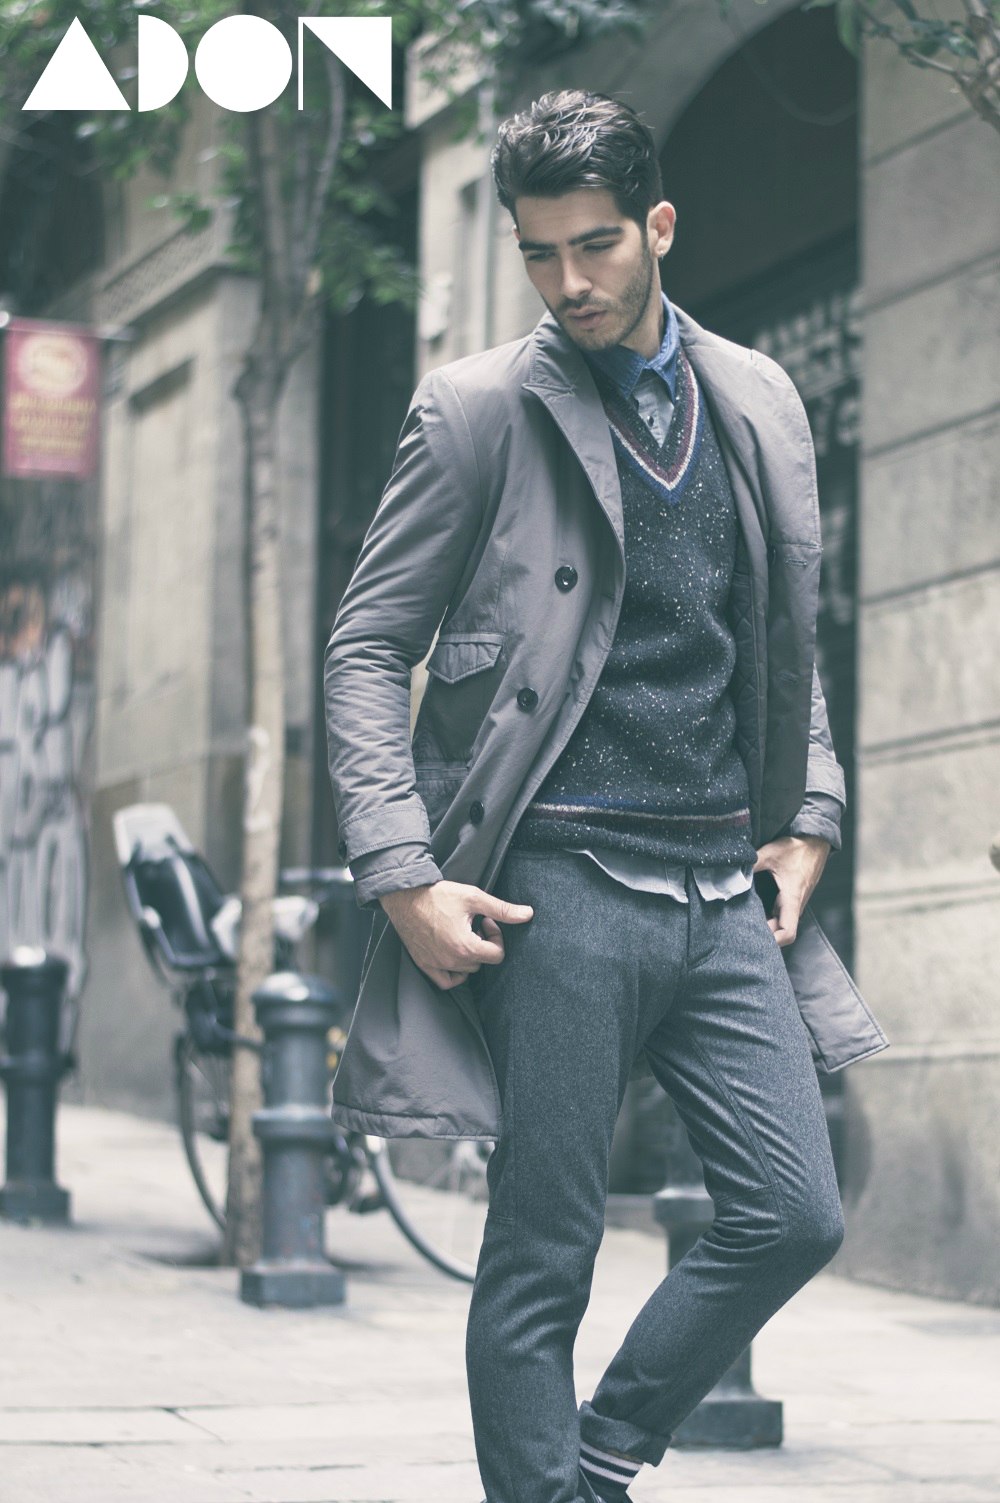 Coat: G-Star, Vest: Fred Perry, Shirt: Guess, Trouser: Custo, Shocks: AW LAB, Boots: G-Star